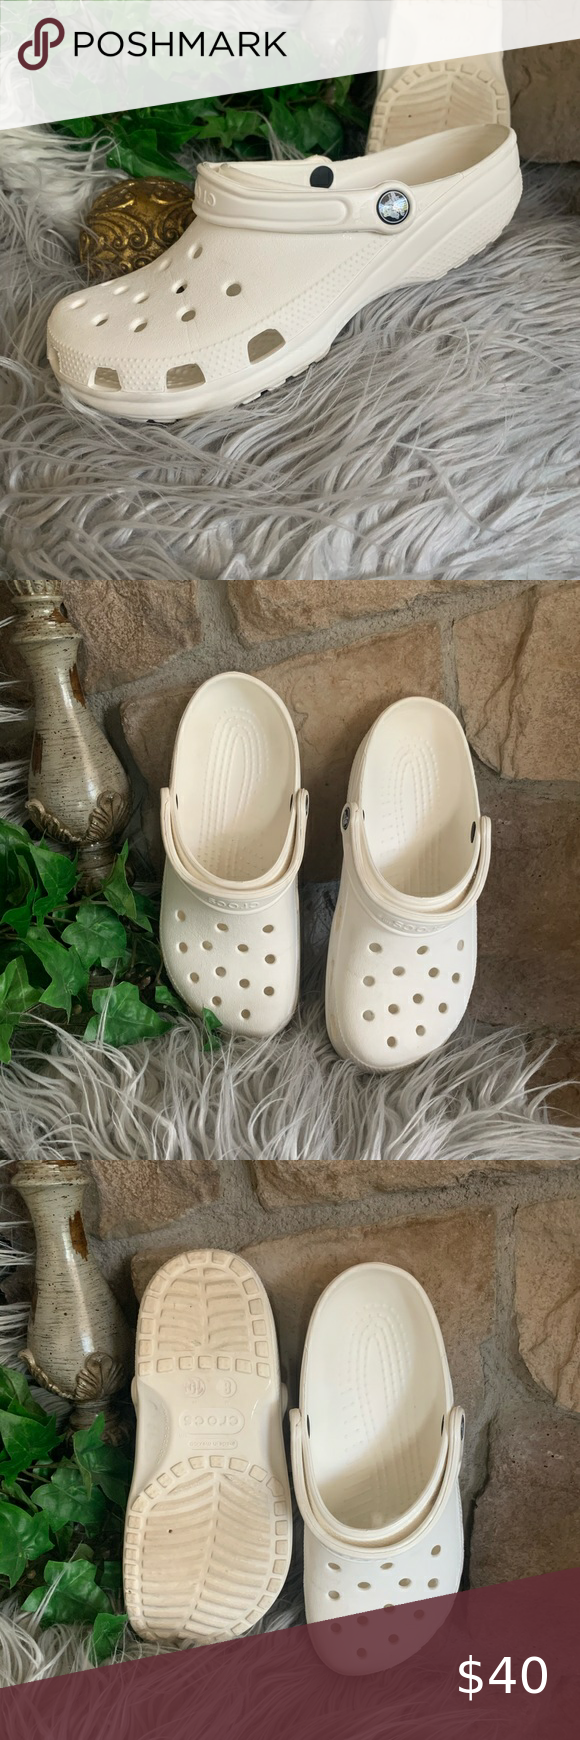 Crocs In White Women S 10 Or Men S 8 Clean White Crocs In The Traditional Style Easy To Clean No Toe Or Foot Print Wear On Inte In 2020 Crocs White Women Cleaning